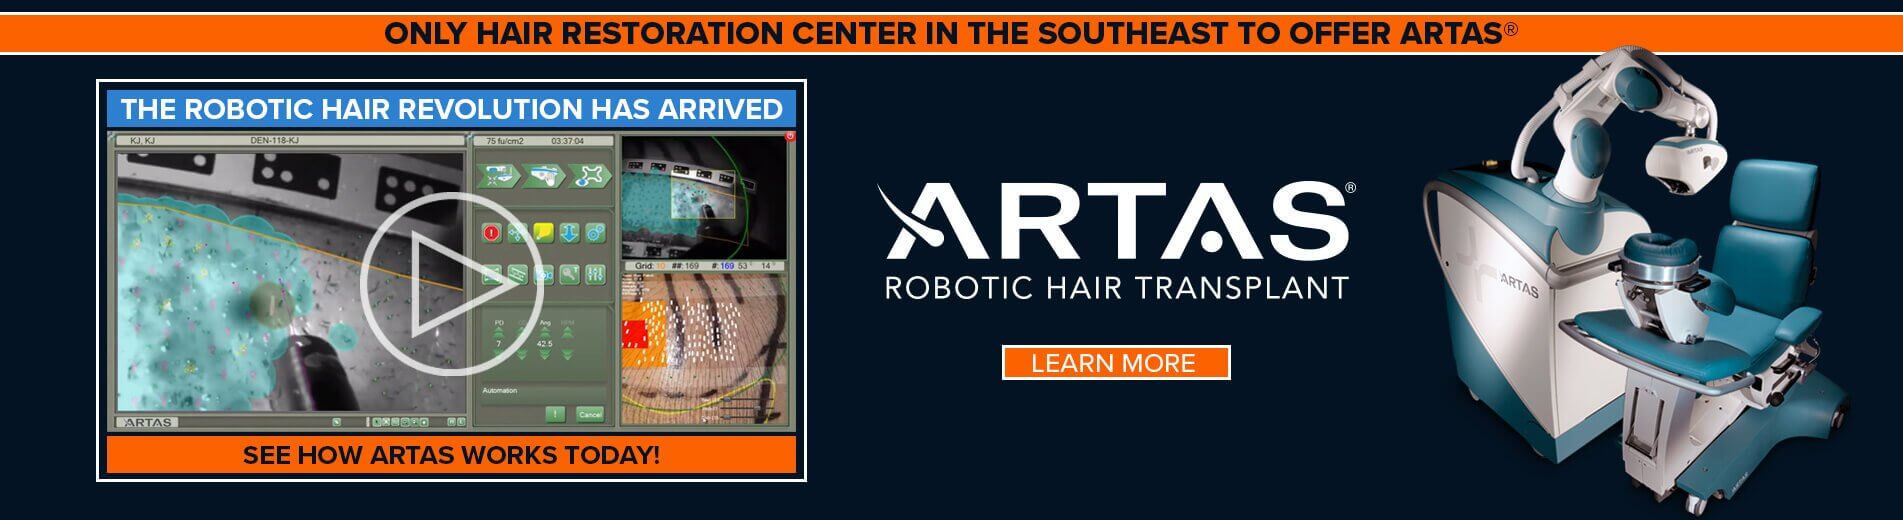 Only Hair Restoration Center in the Southeast to Offer ARTAS®